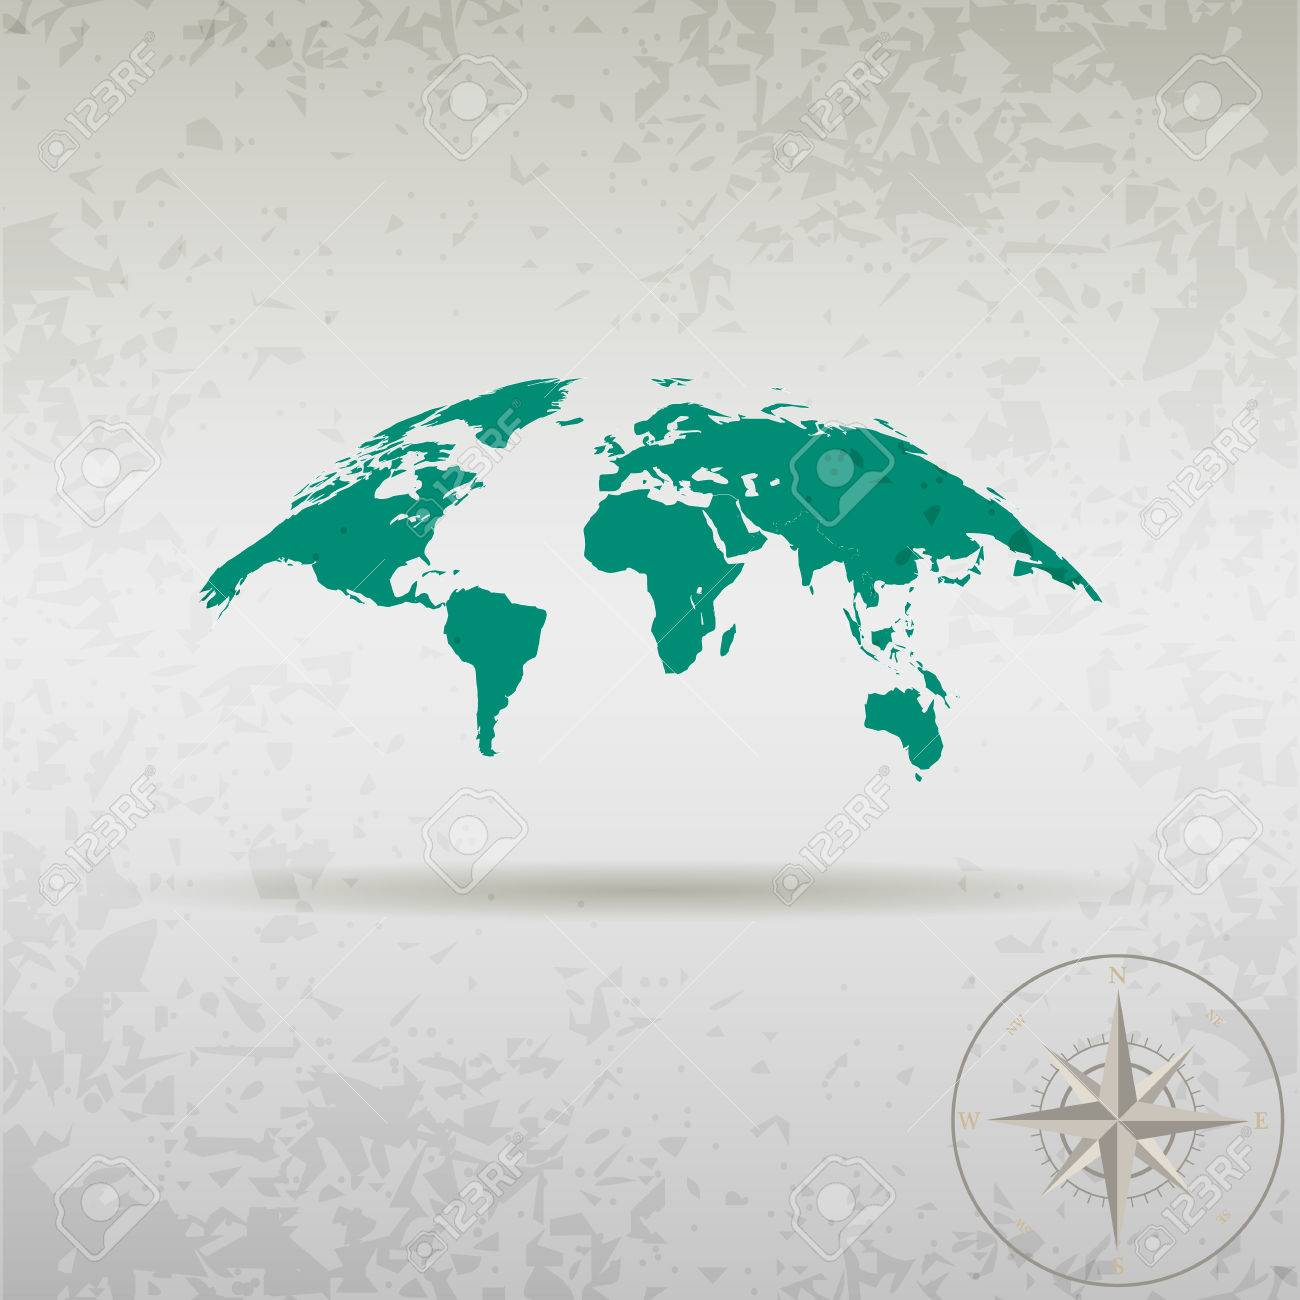 Map Of The World With Compass.Map Of The Earth With A Compass In A Stylish Design Royalty Free